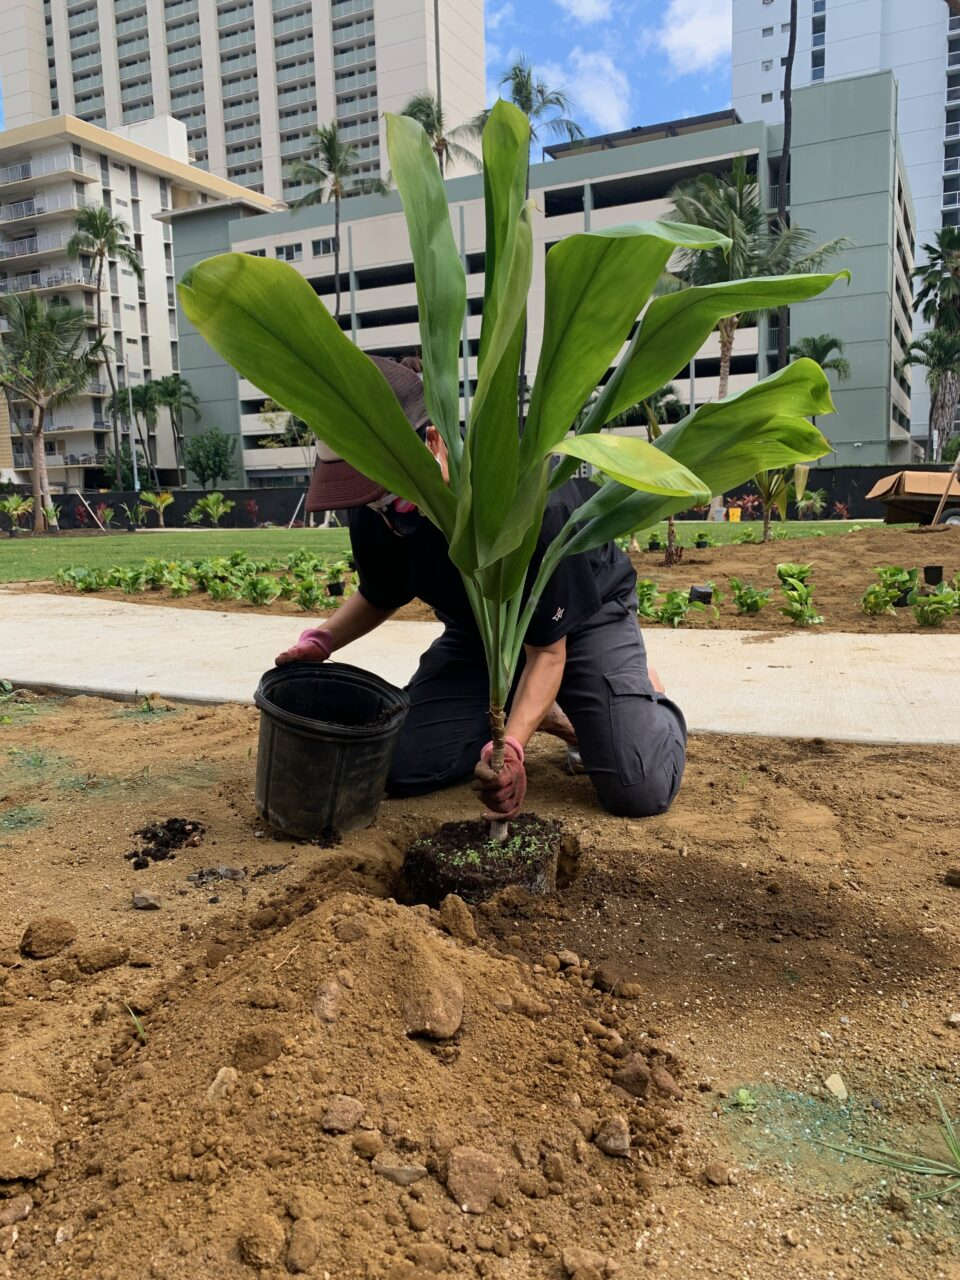 The Rotary Club and local dignitaries planted a variety of greenery at Honolulu's Centennial Park. (Photo: Courtesy Council member Kym Pine)